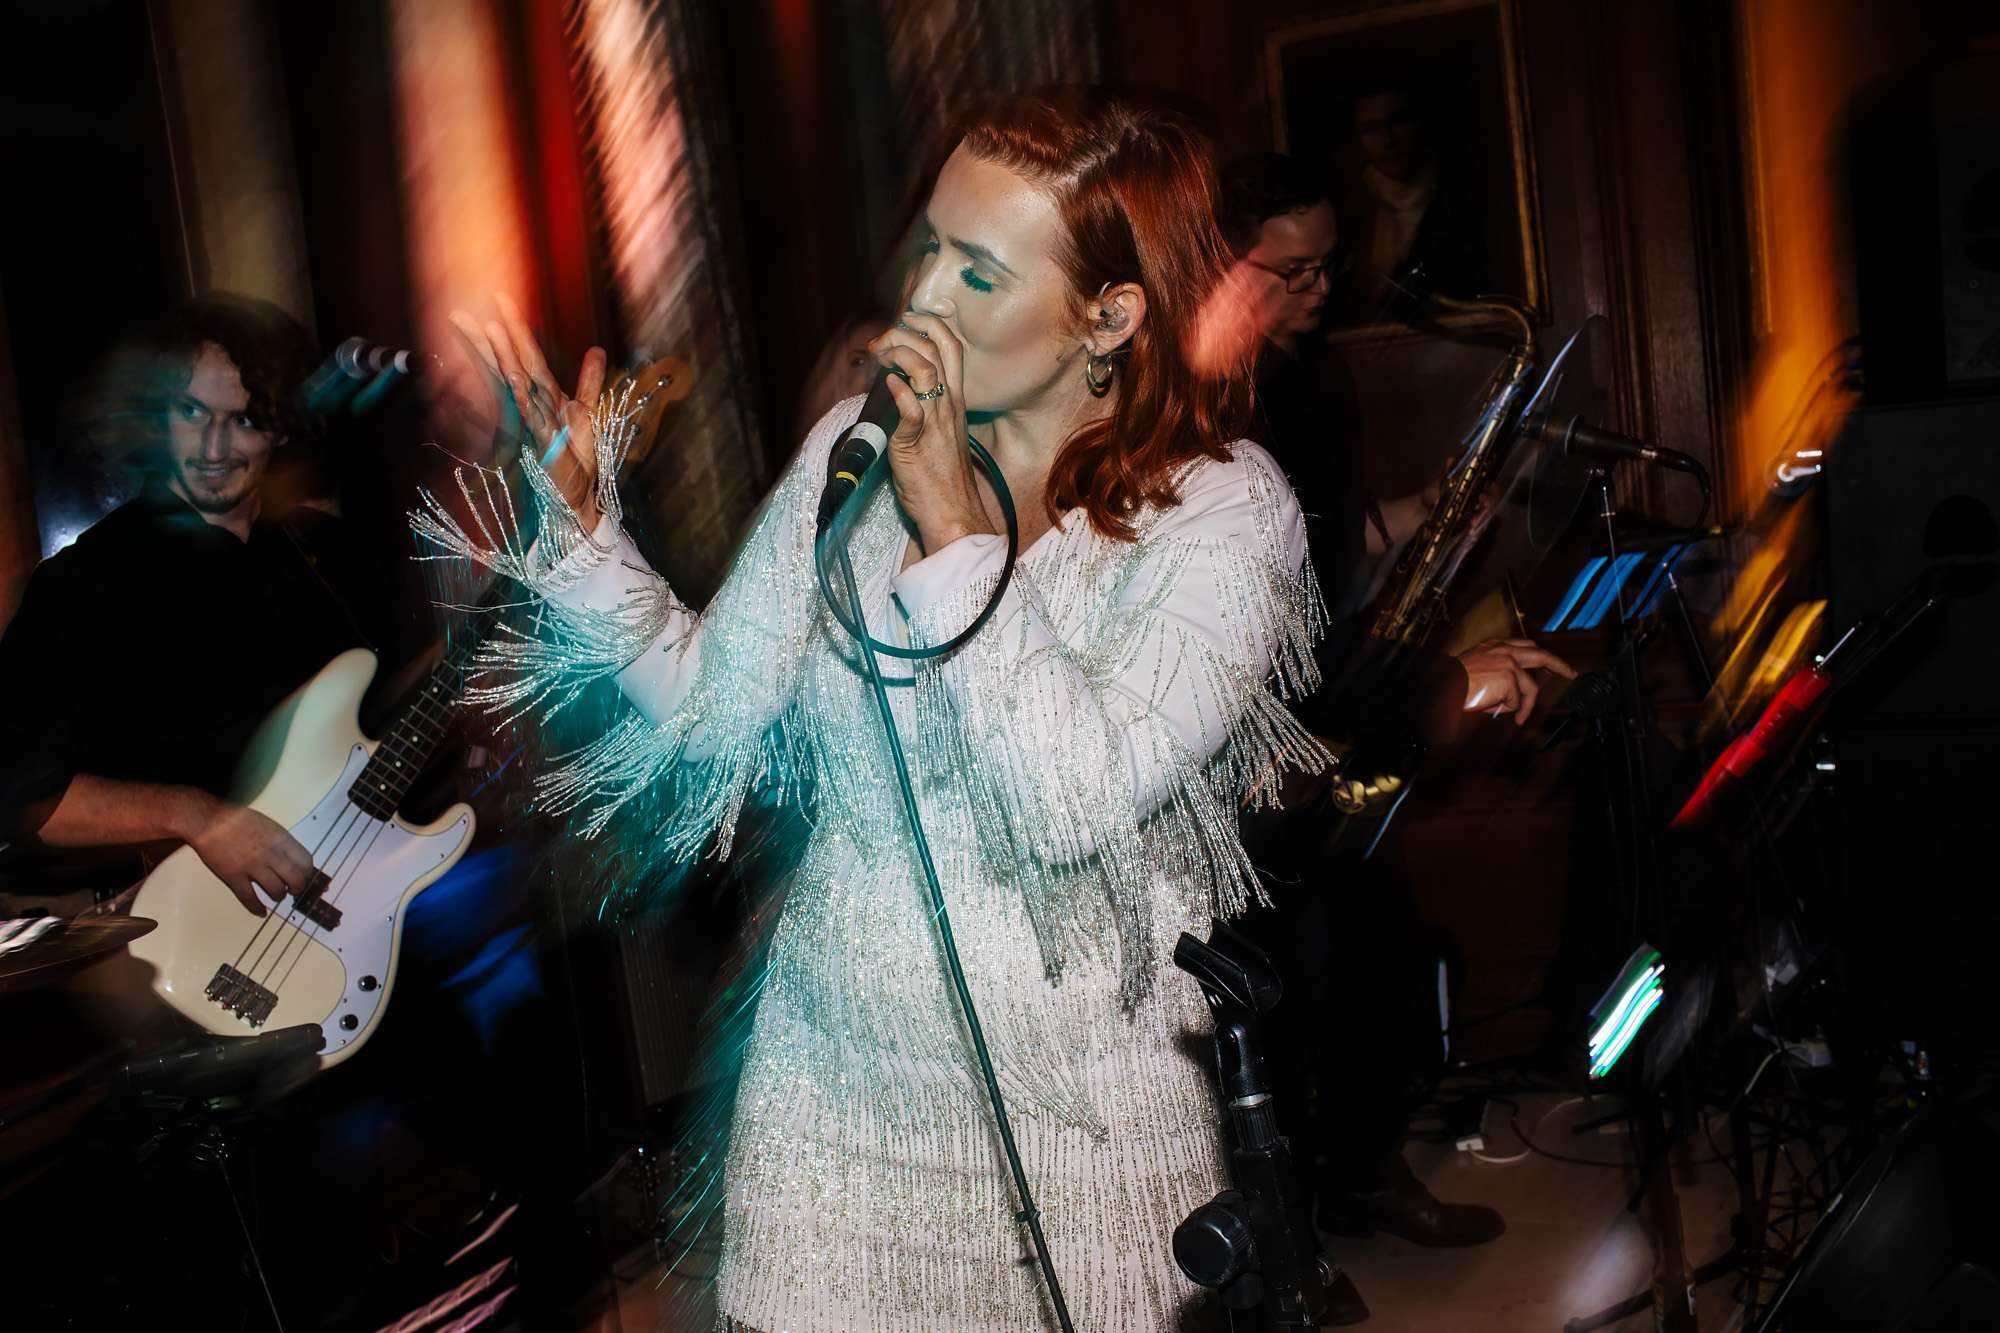 Singer performing in the band at a wedding